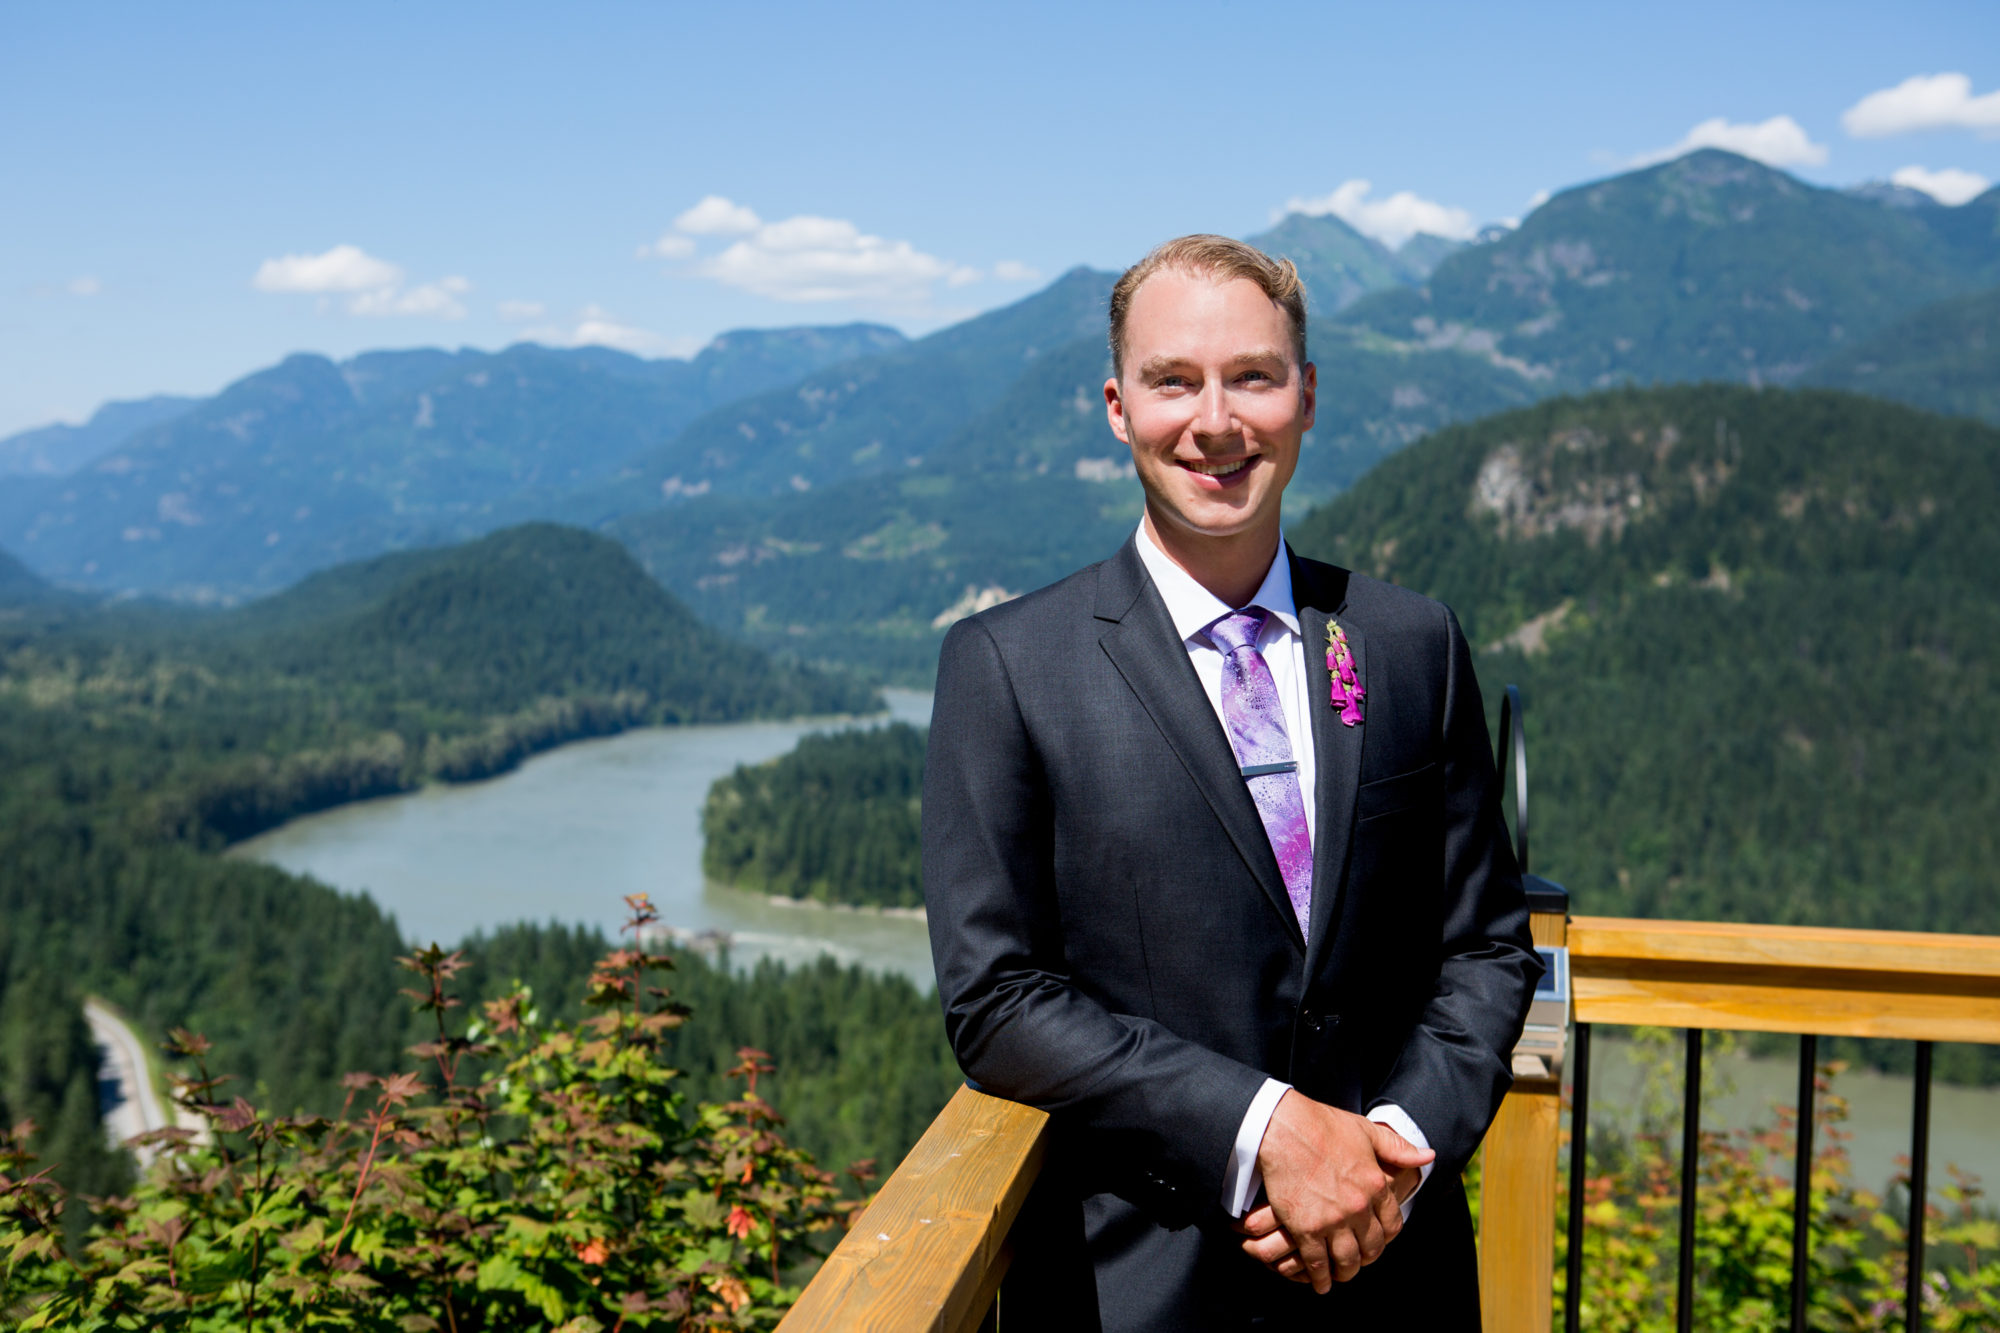 Groom Hope British Columbia Wedding Zsuzsi Pal Photography